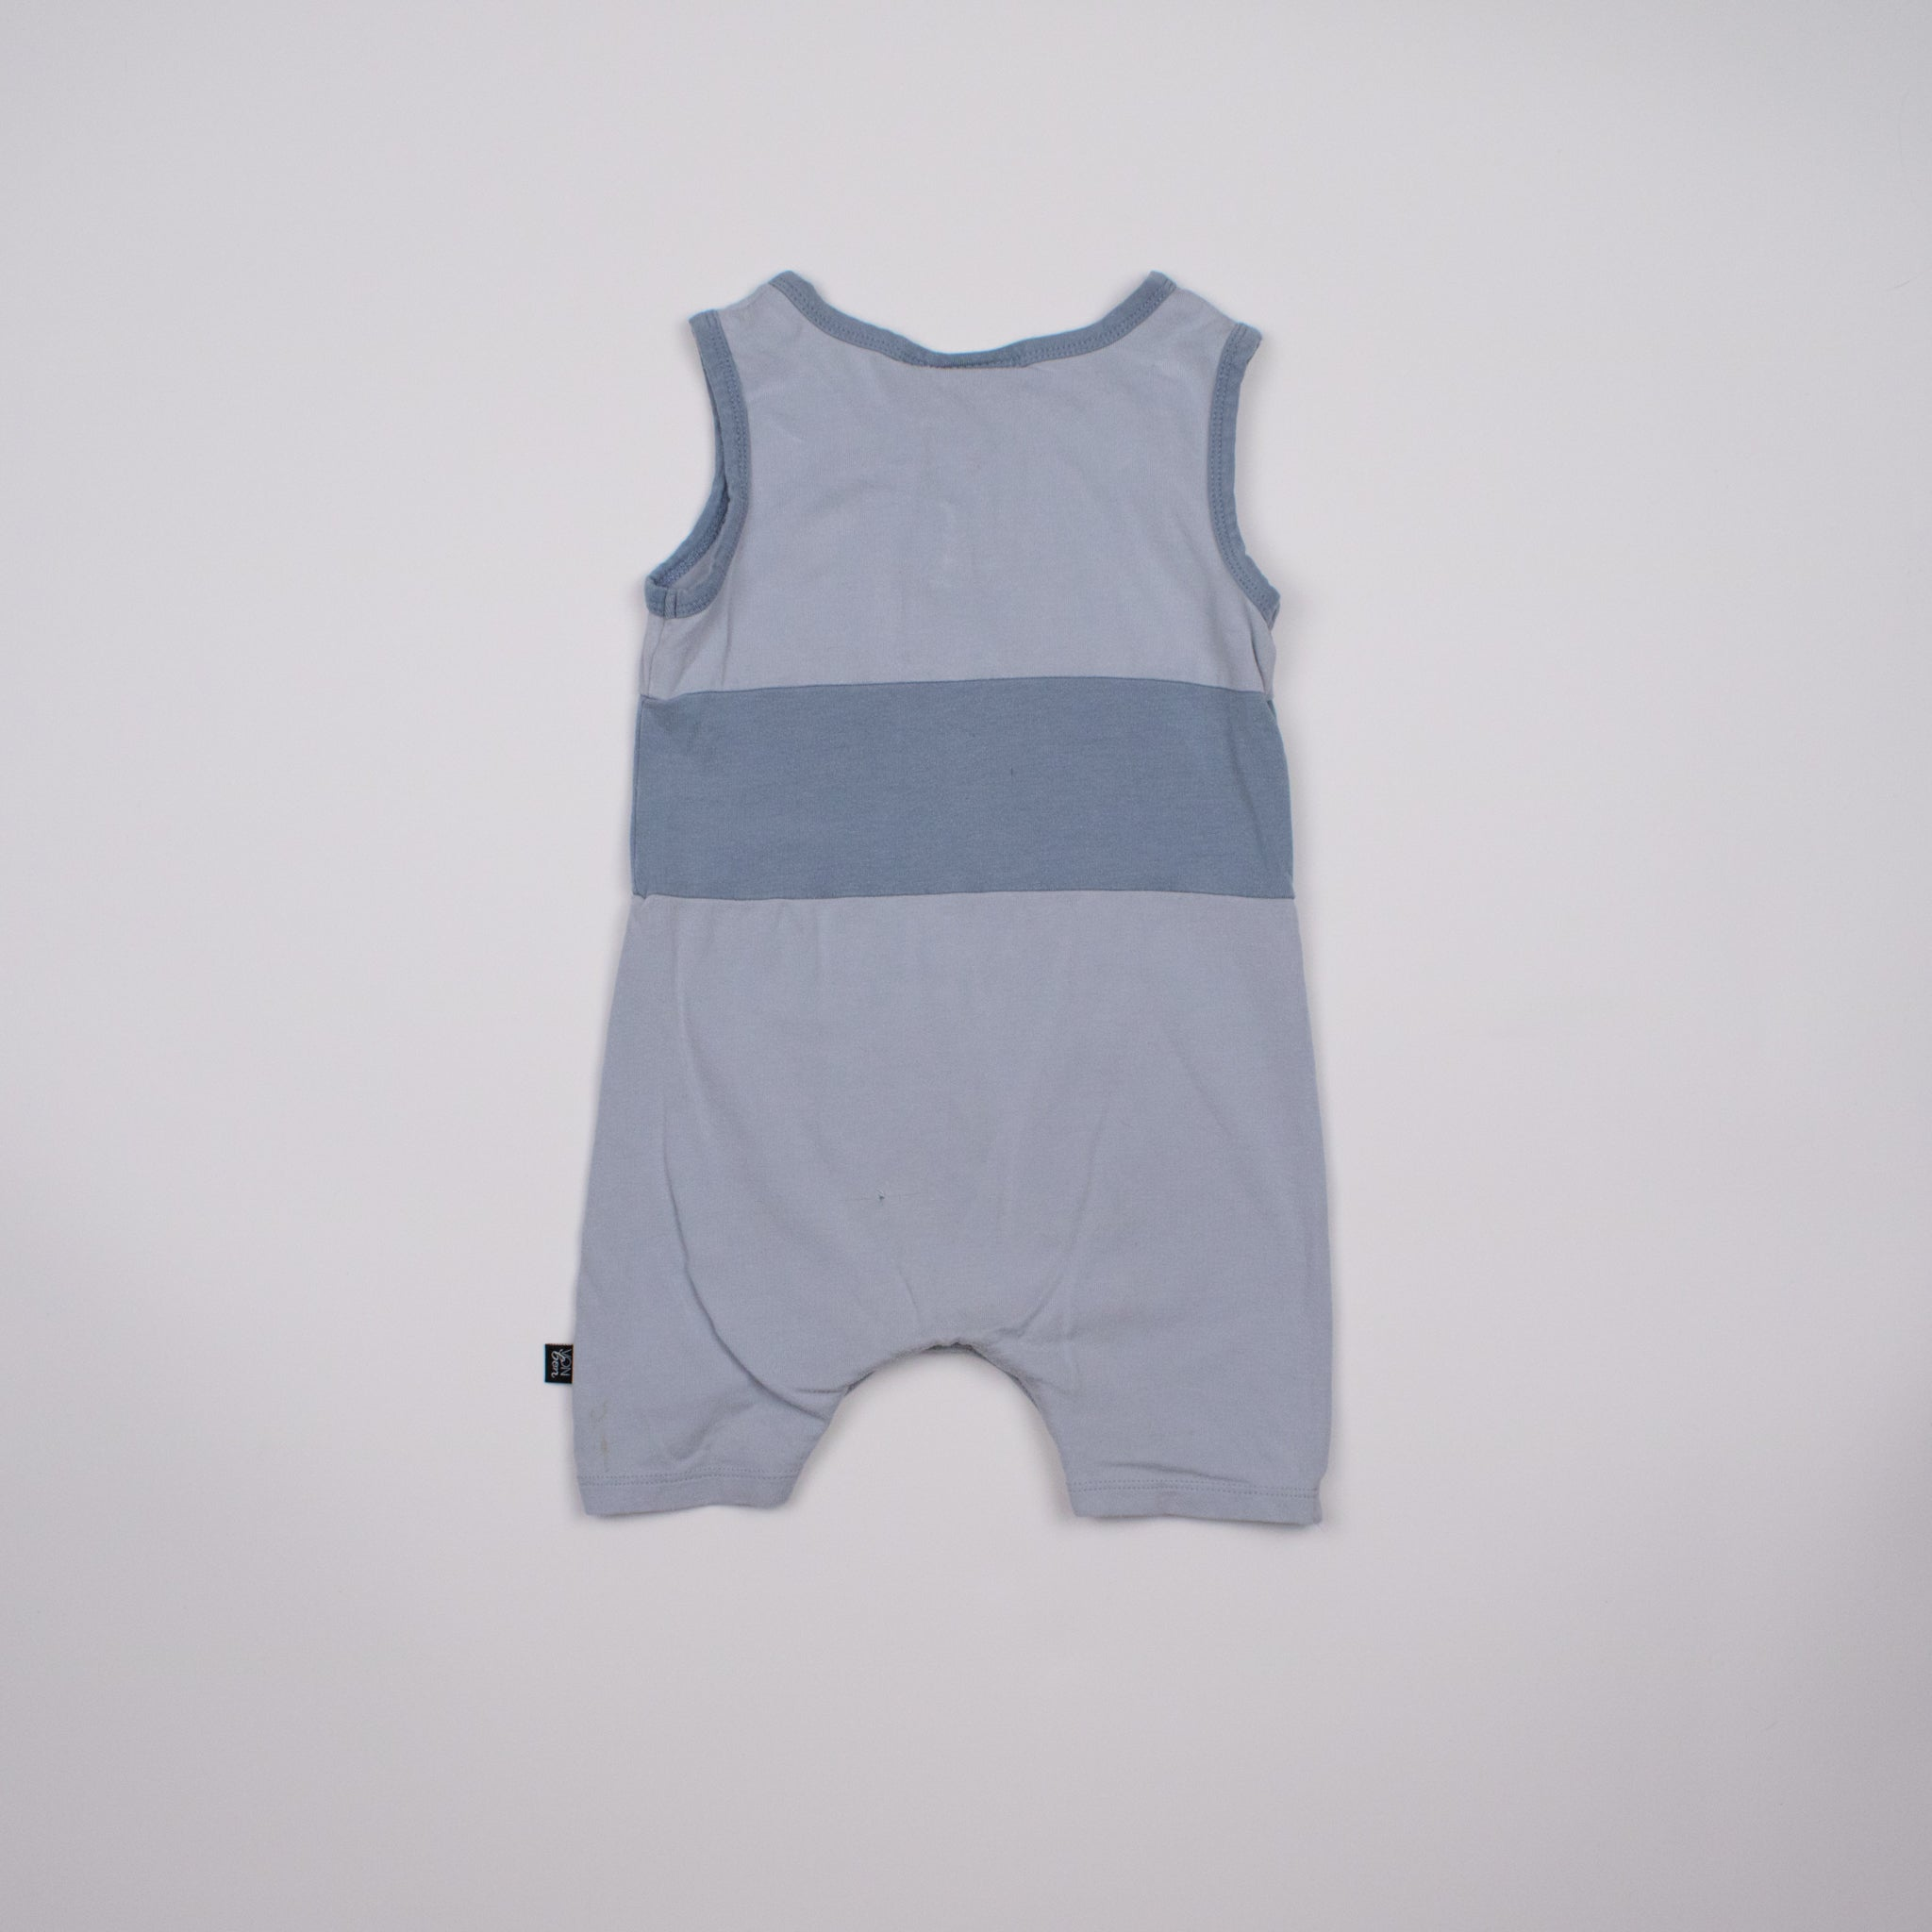 Blue Sleeveless Jumpsuit 1-2Y